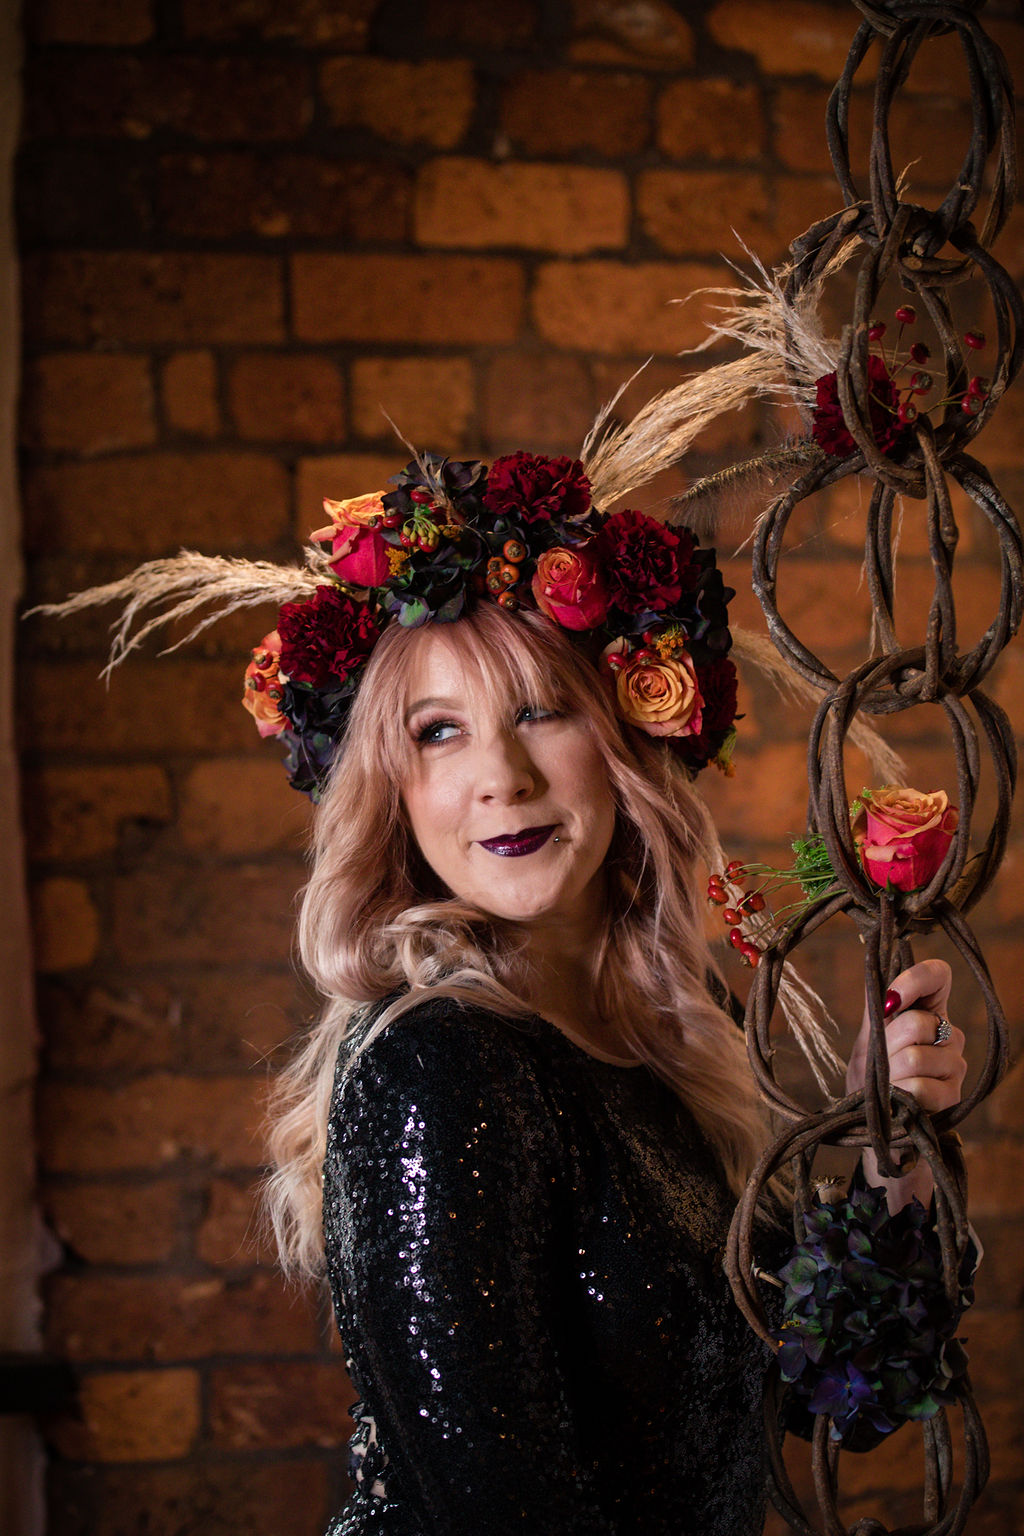 dark autumn wedding - autumn flower crown - bridal flower crown - black wedding dress - autumnal bridal wear - autumn bridal portrait - edgy autumn wedding